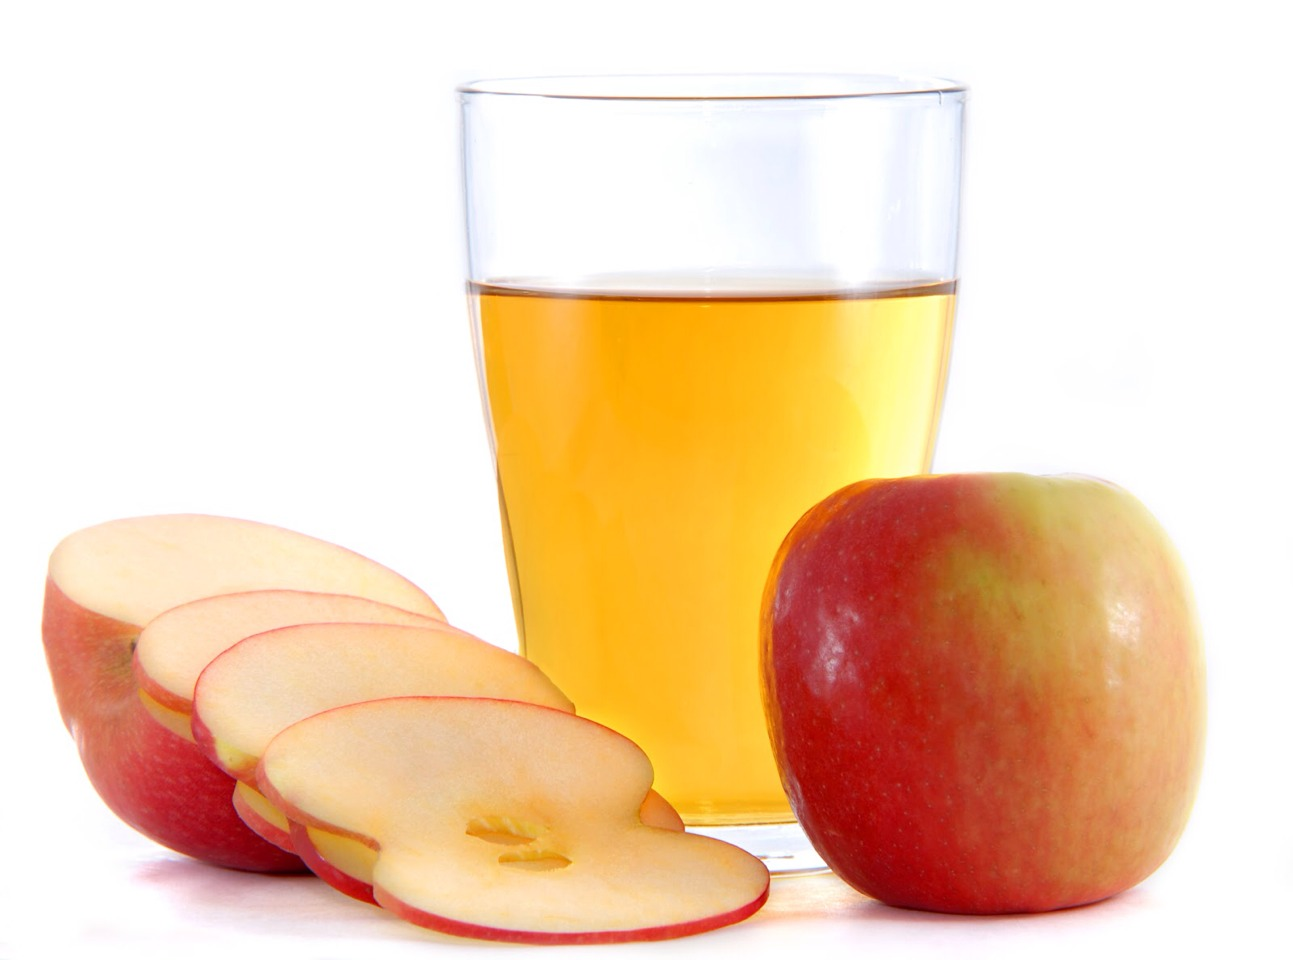 Did you know that drinking one cup of apple cider with your meals can help you lose between 1% to 2% body fat in just 4 weeks? You'll gain calorie-burning lean muscle!